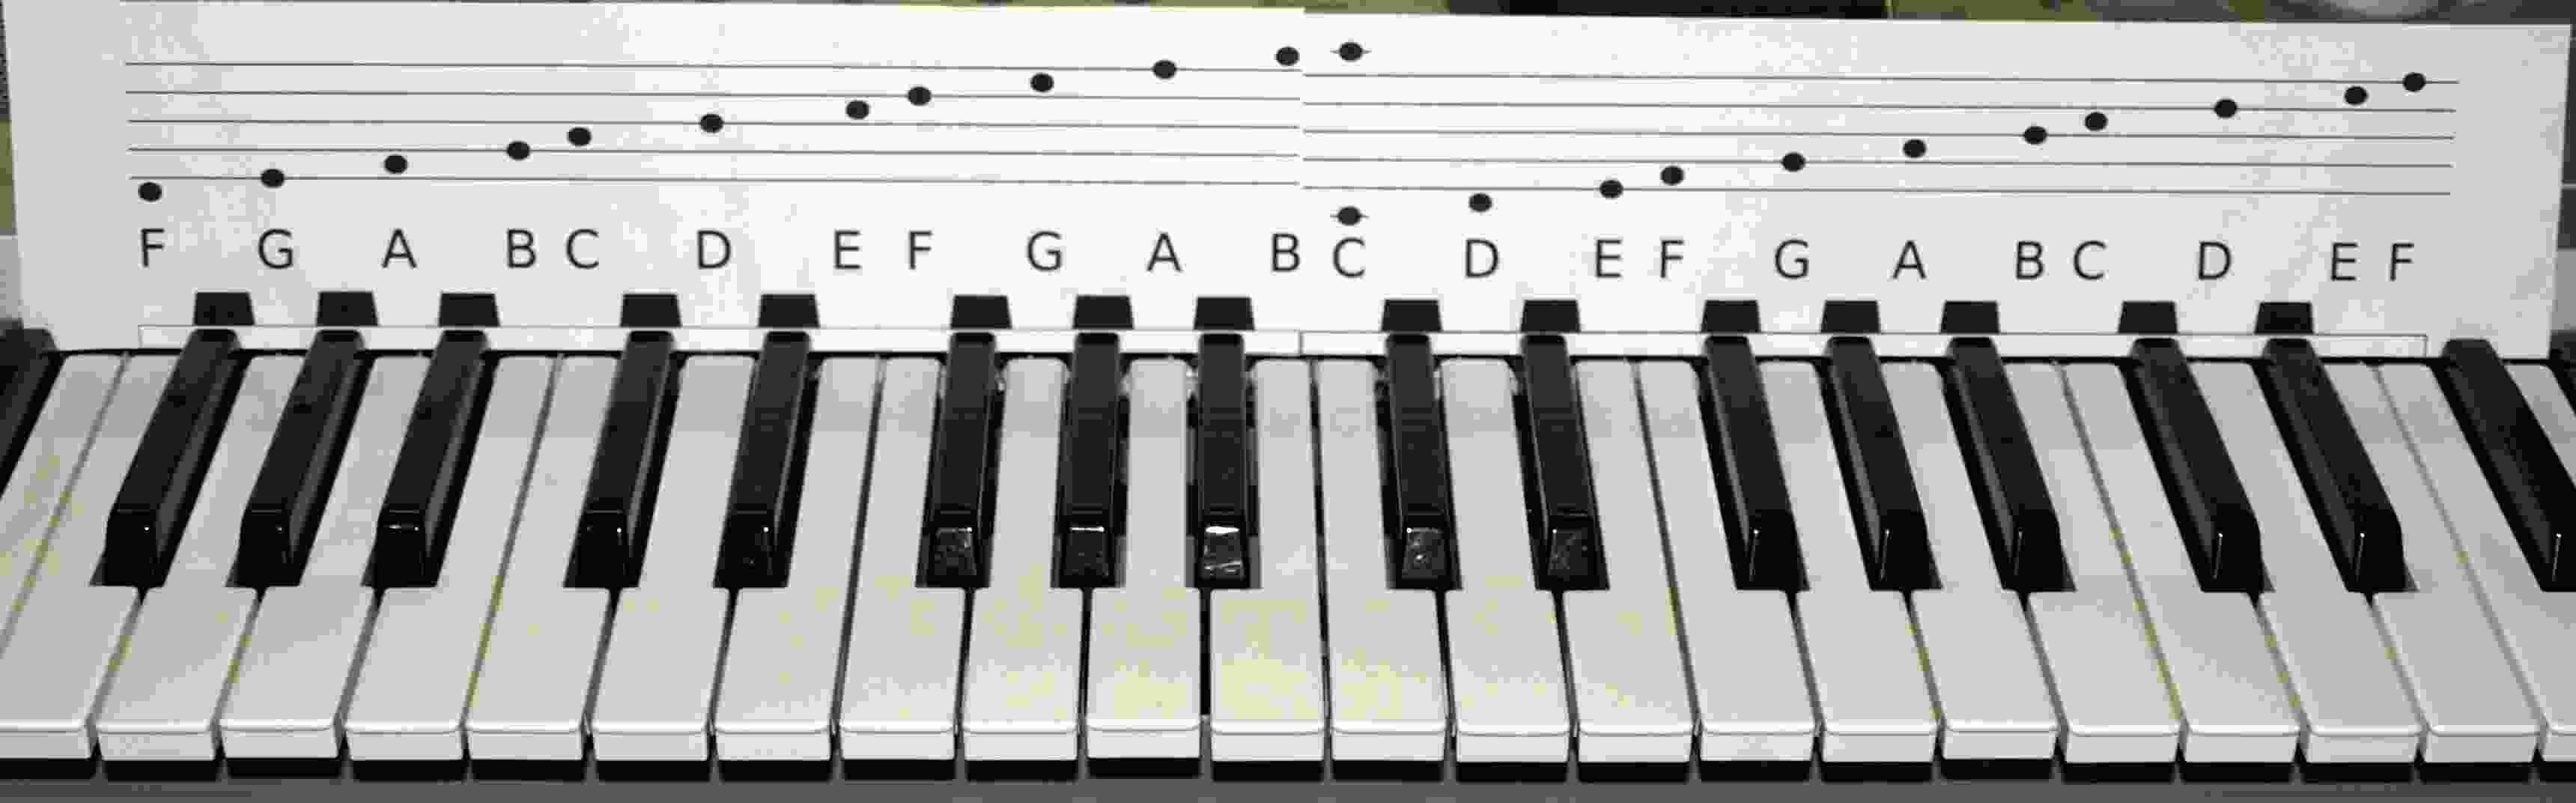 Typical Piano Chord Notation Practice Memorizing The